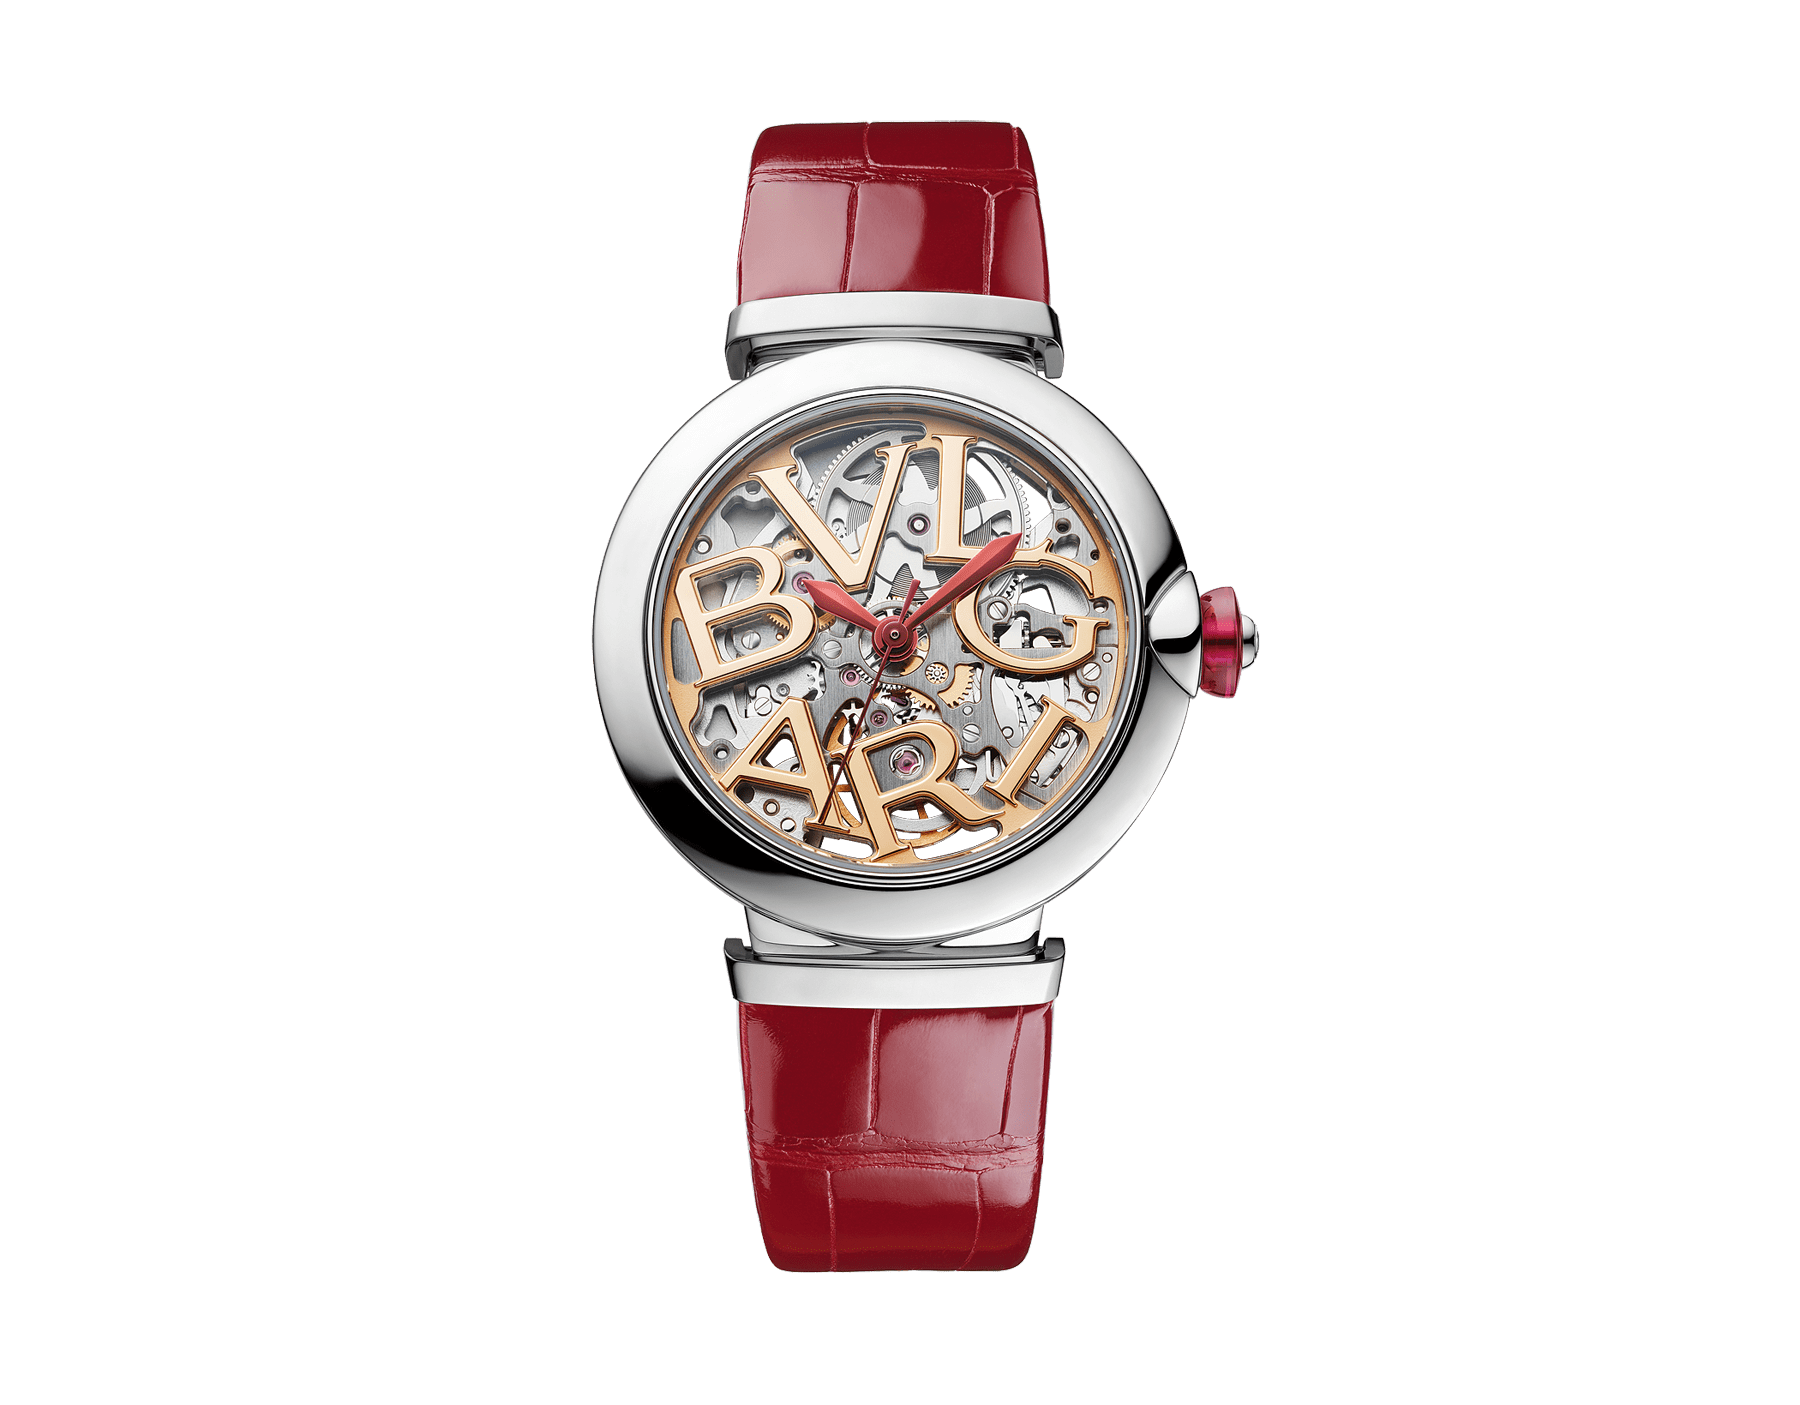 LVCEA Skeleton watch with mechanical manufacture movement, automatic winding, stainless steel case, openwork BVLGARI logo dial and red alligator bracelet 102879 image 1